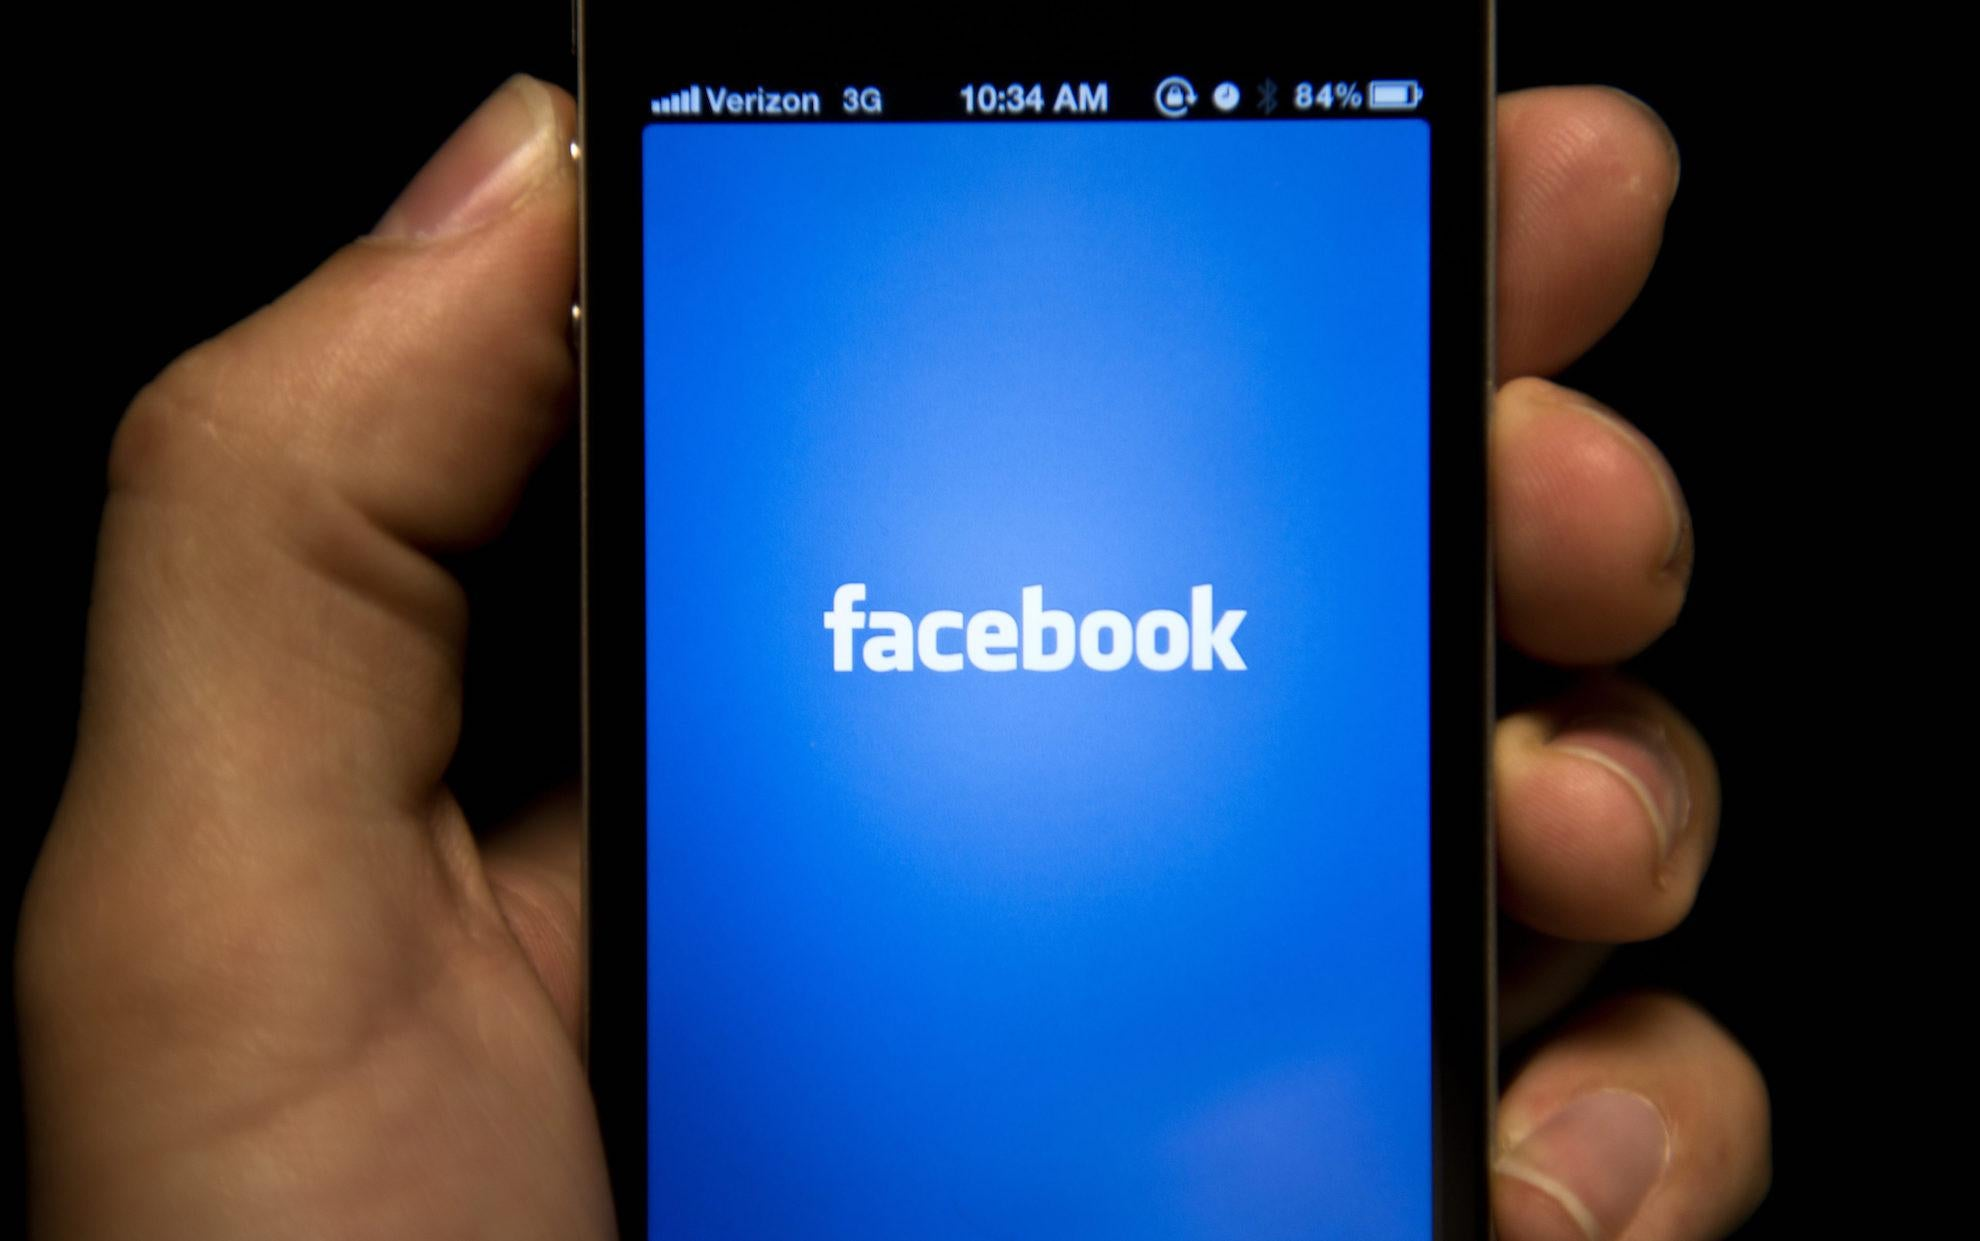 Facebook down: App kicks users out of their accounts and doesn't let